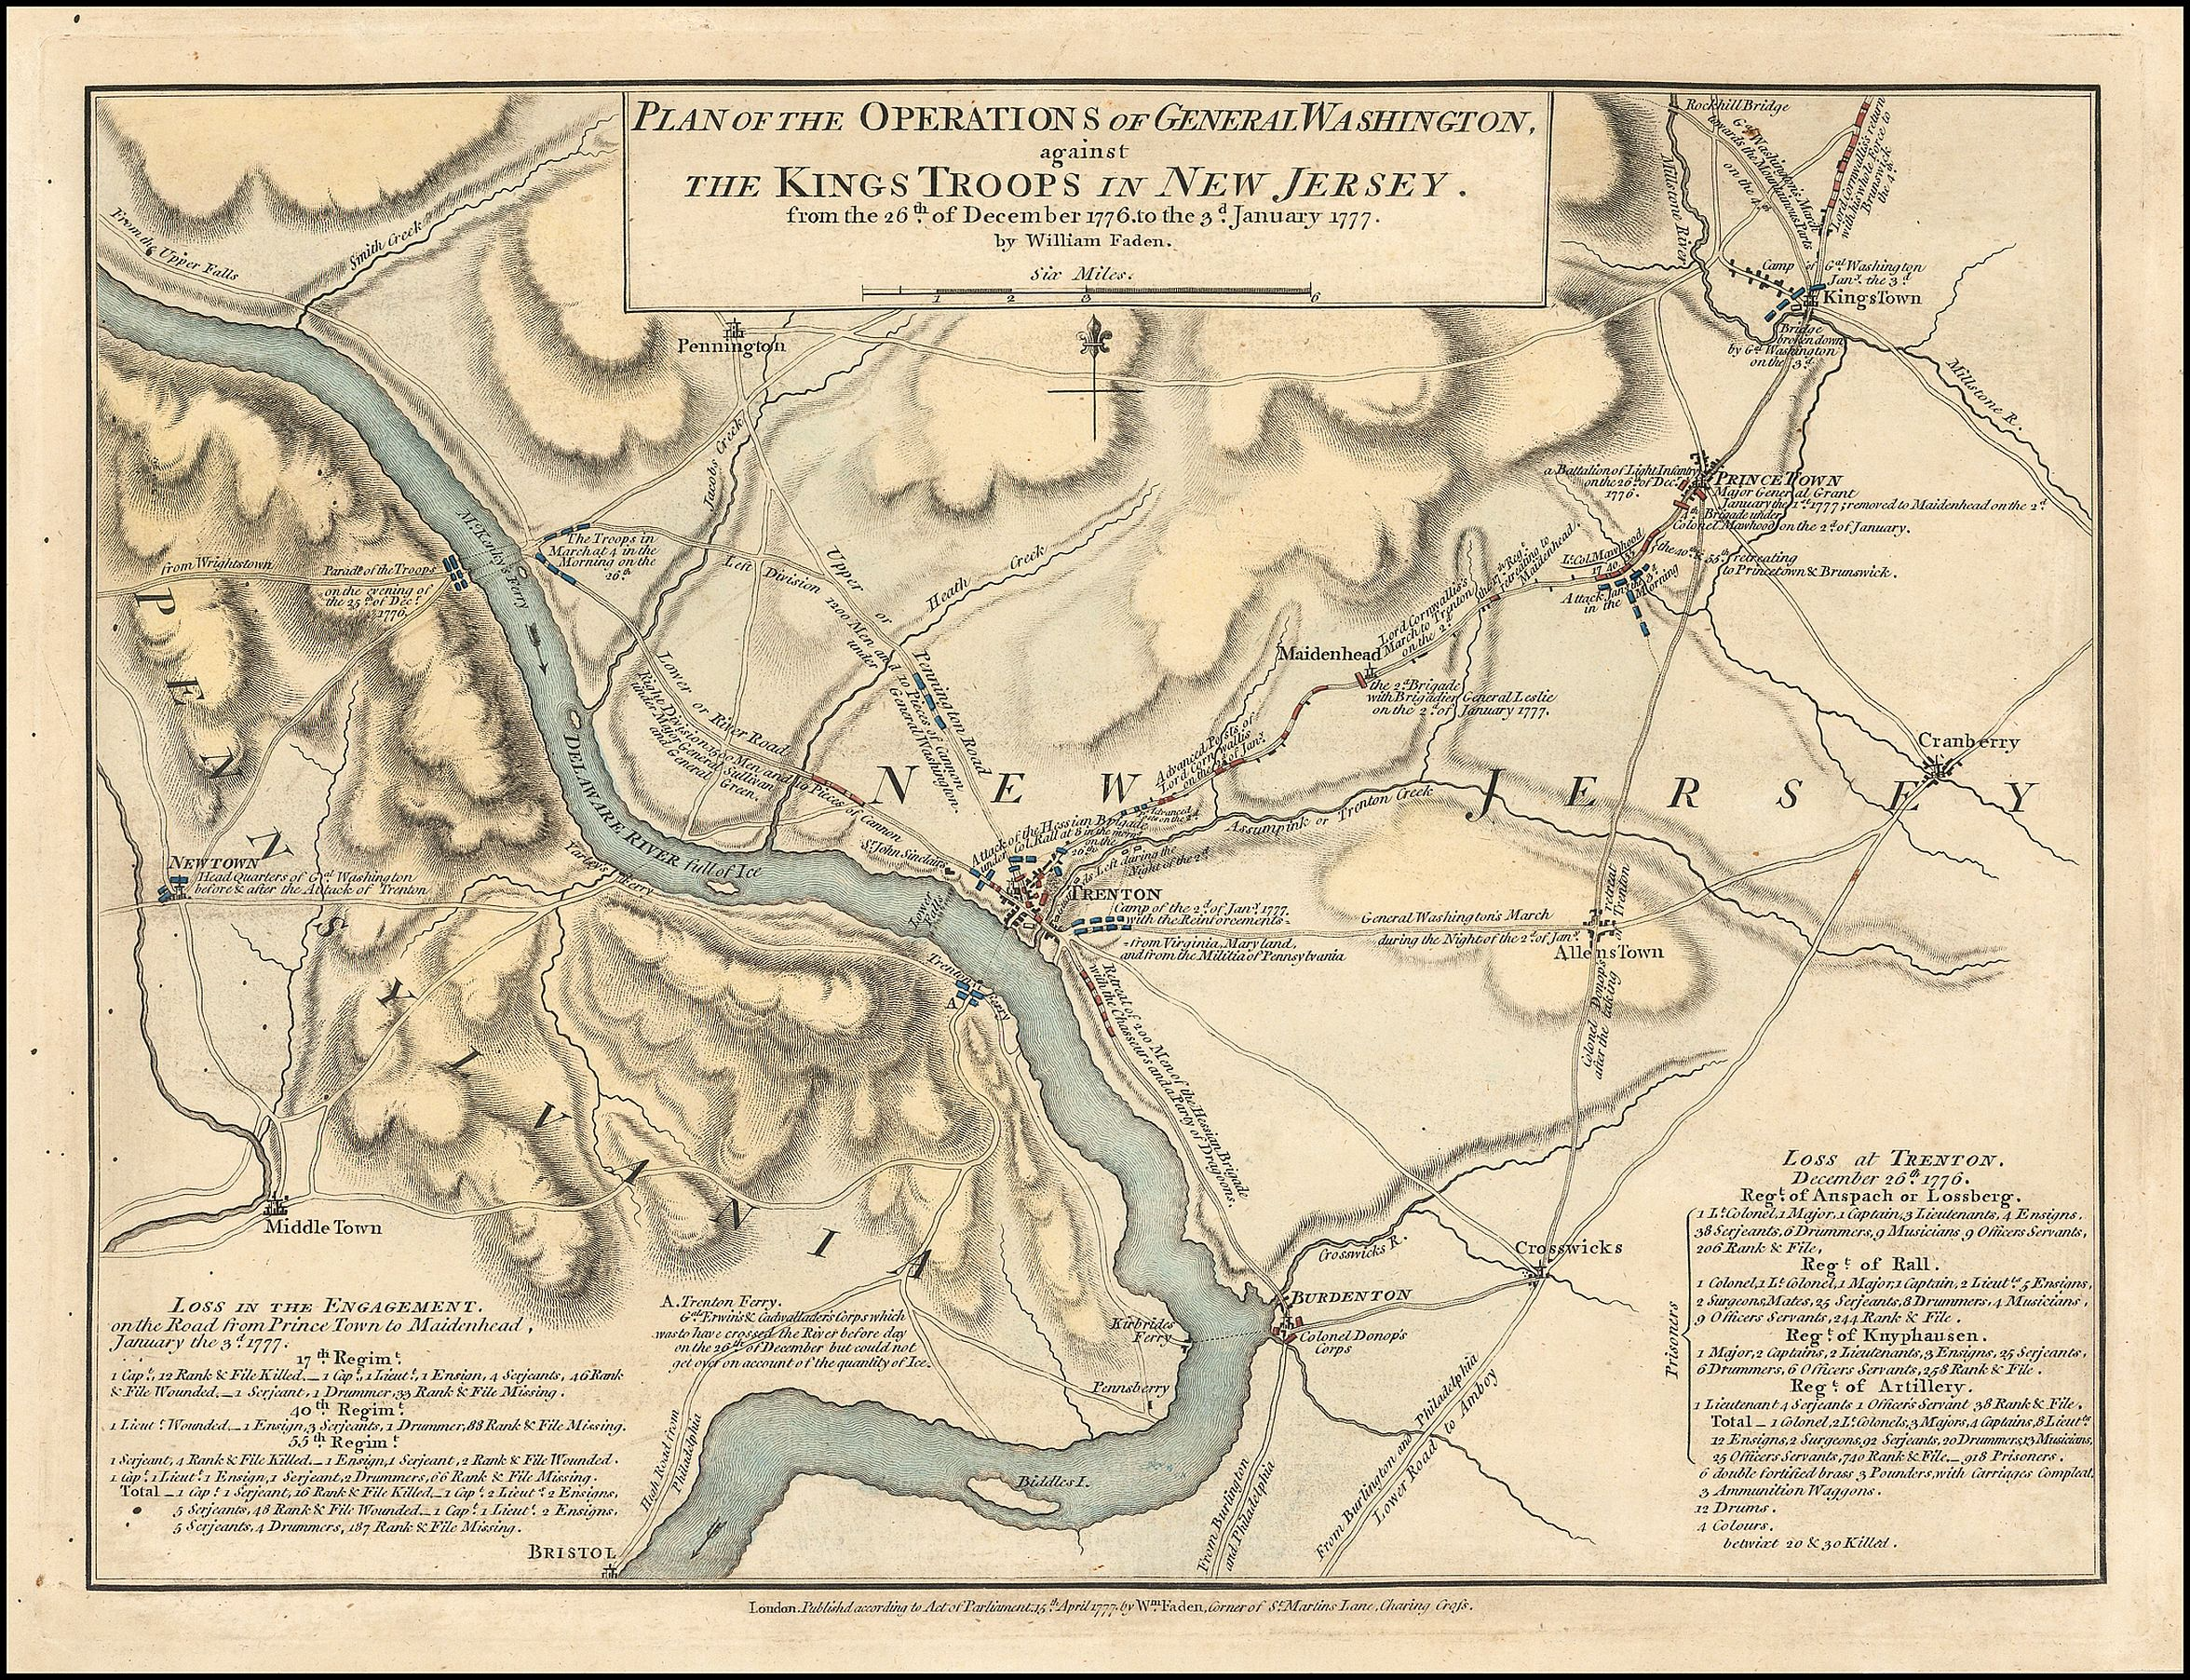 Map by William Faden, depicting Washington's crossing on the Delaware River. Manuscript, pen-and-ink and watercolor (1777)